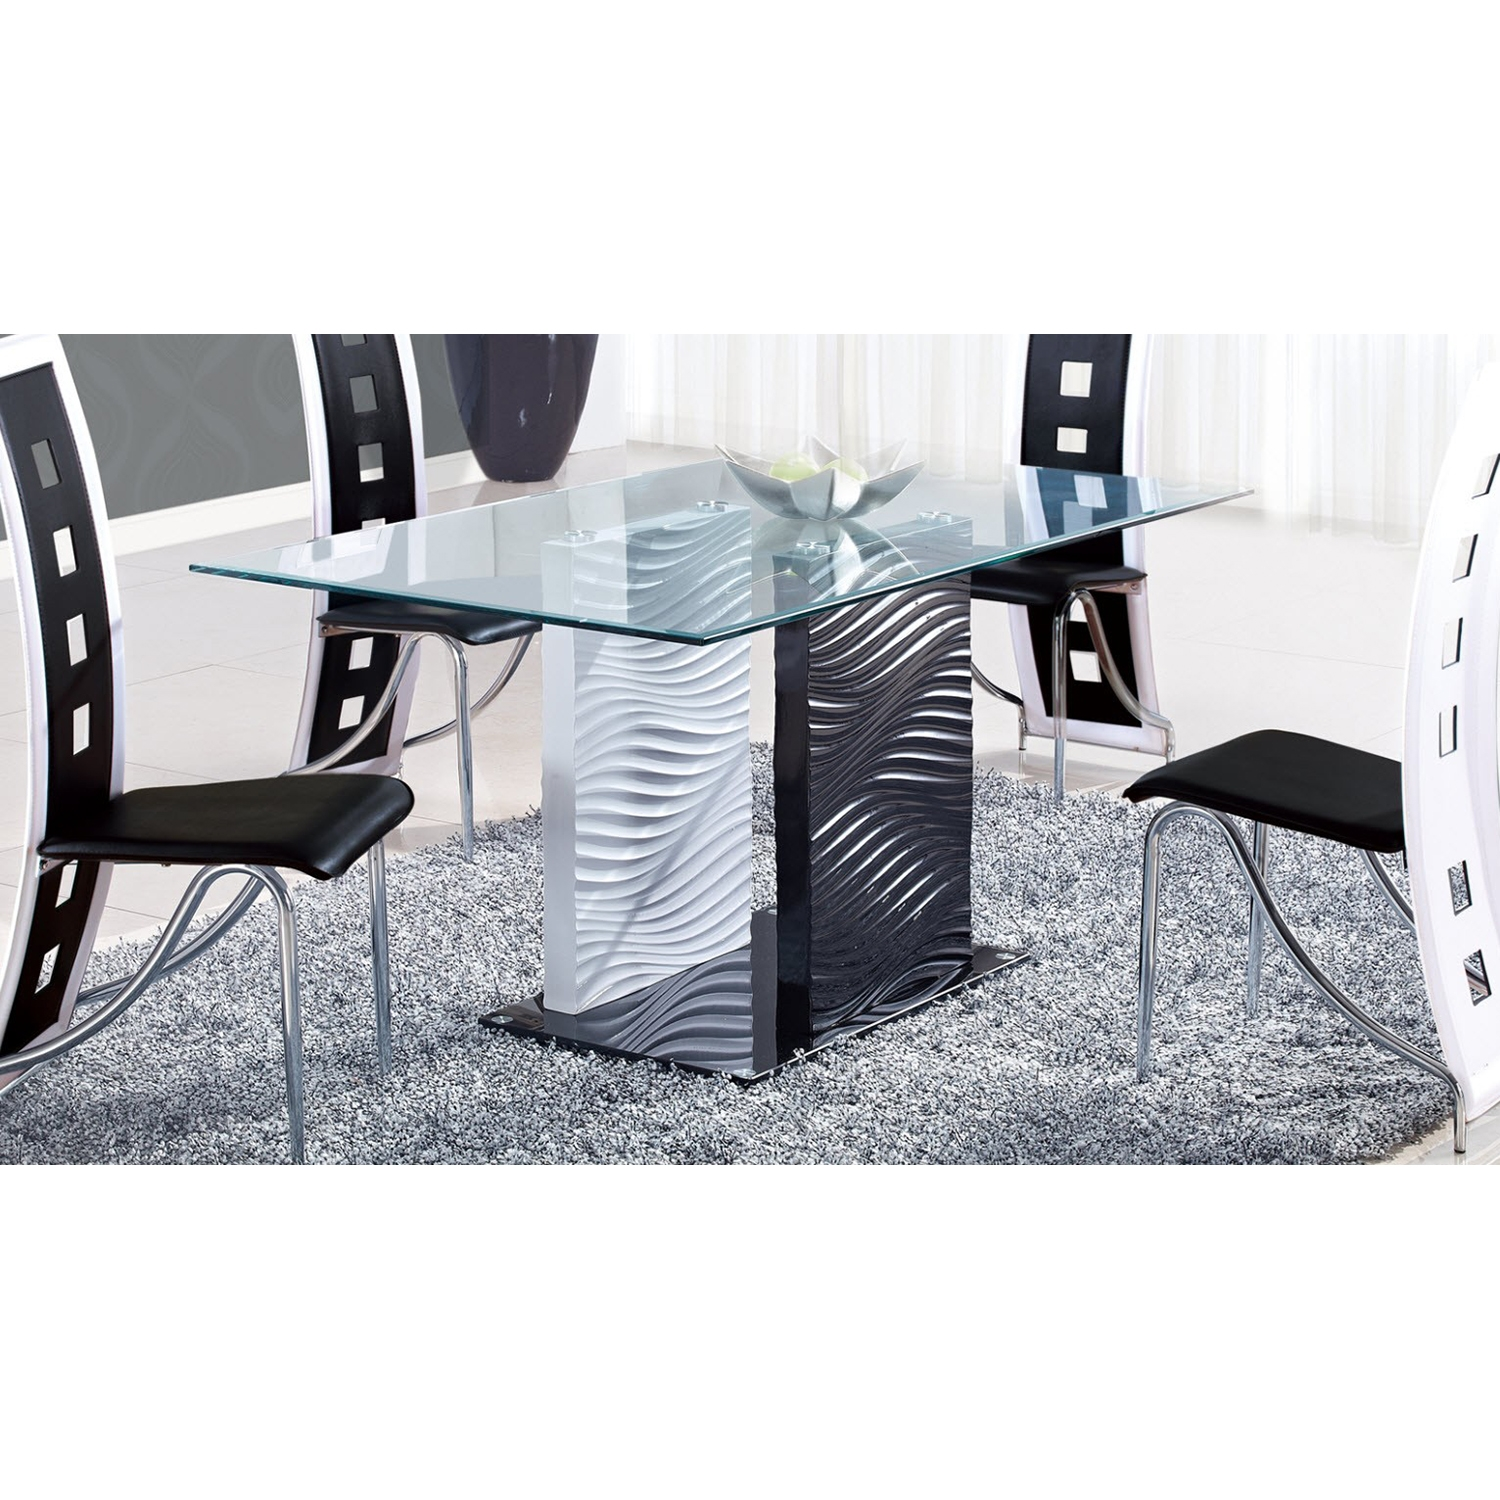 Dining Table - Clear and Black Glass, Black and White Legs